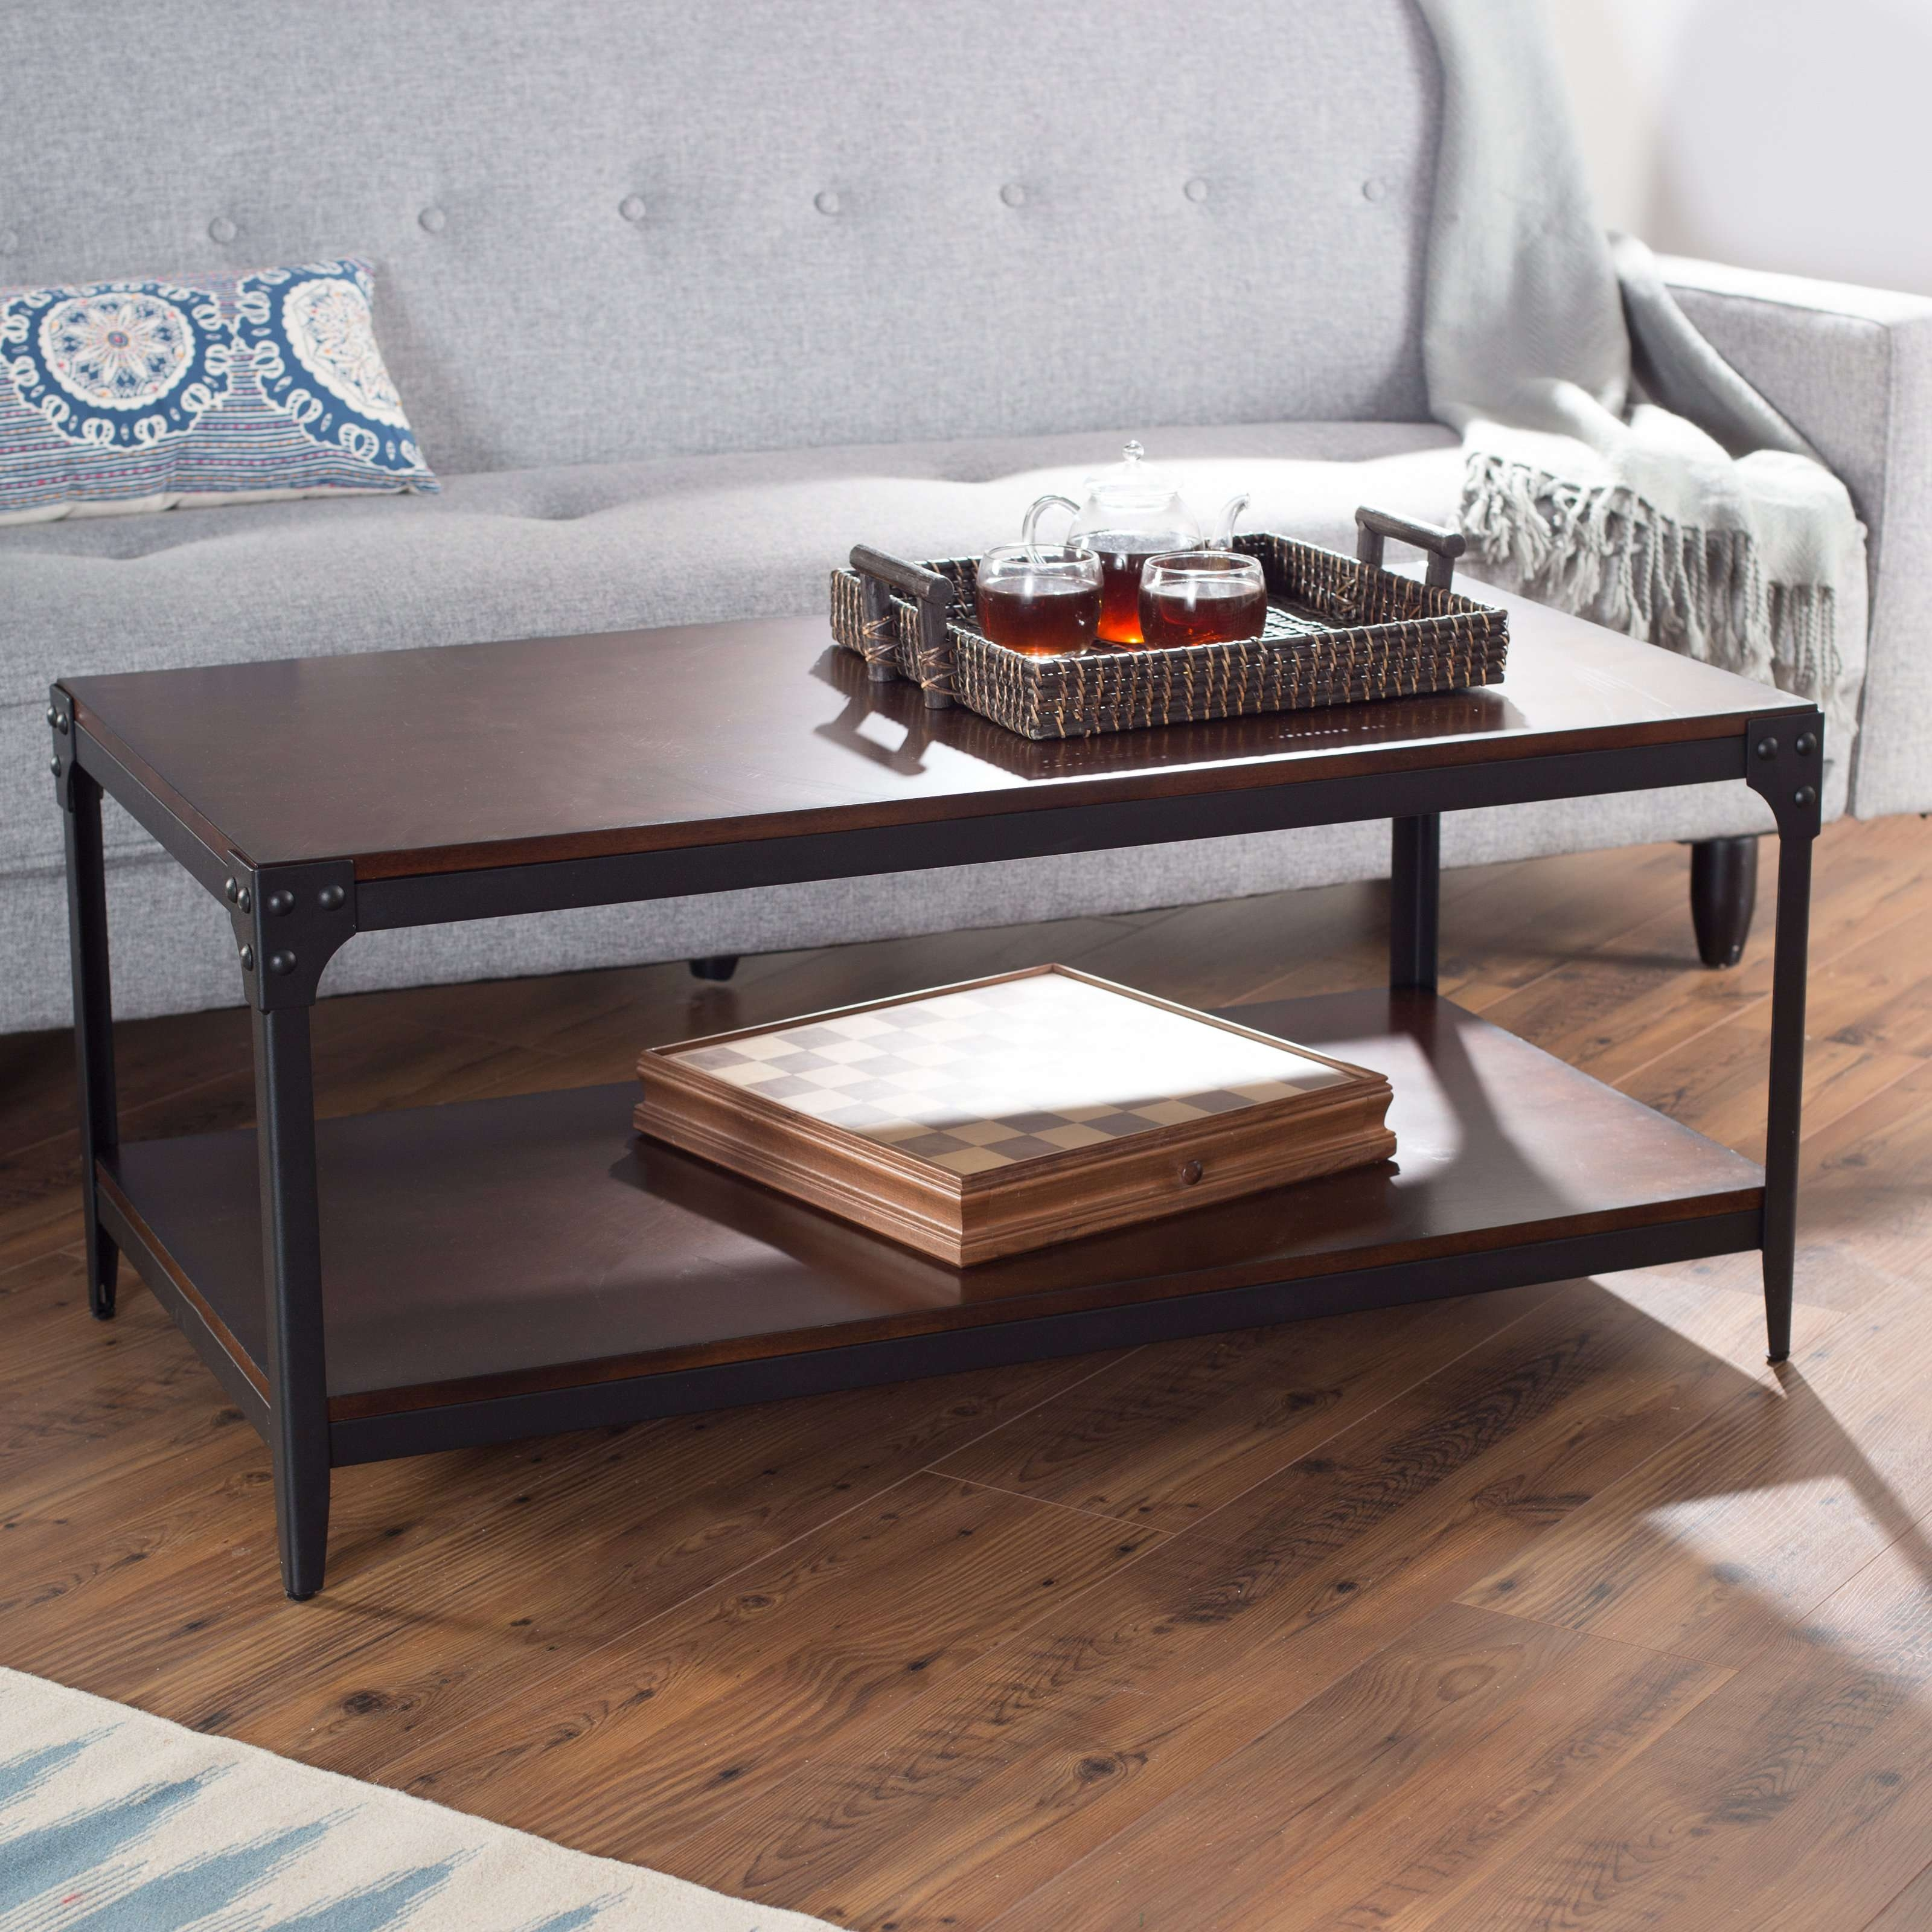 Most Current Industrial Coffee Tables Within Belham Living Trenton Industrial Coffee Table (View 16 of 20)